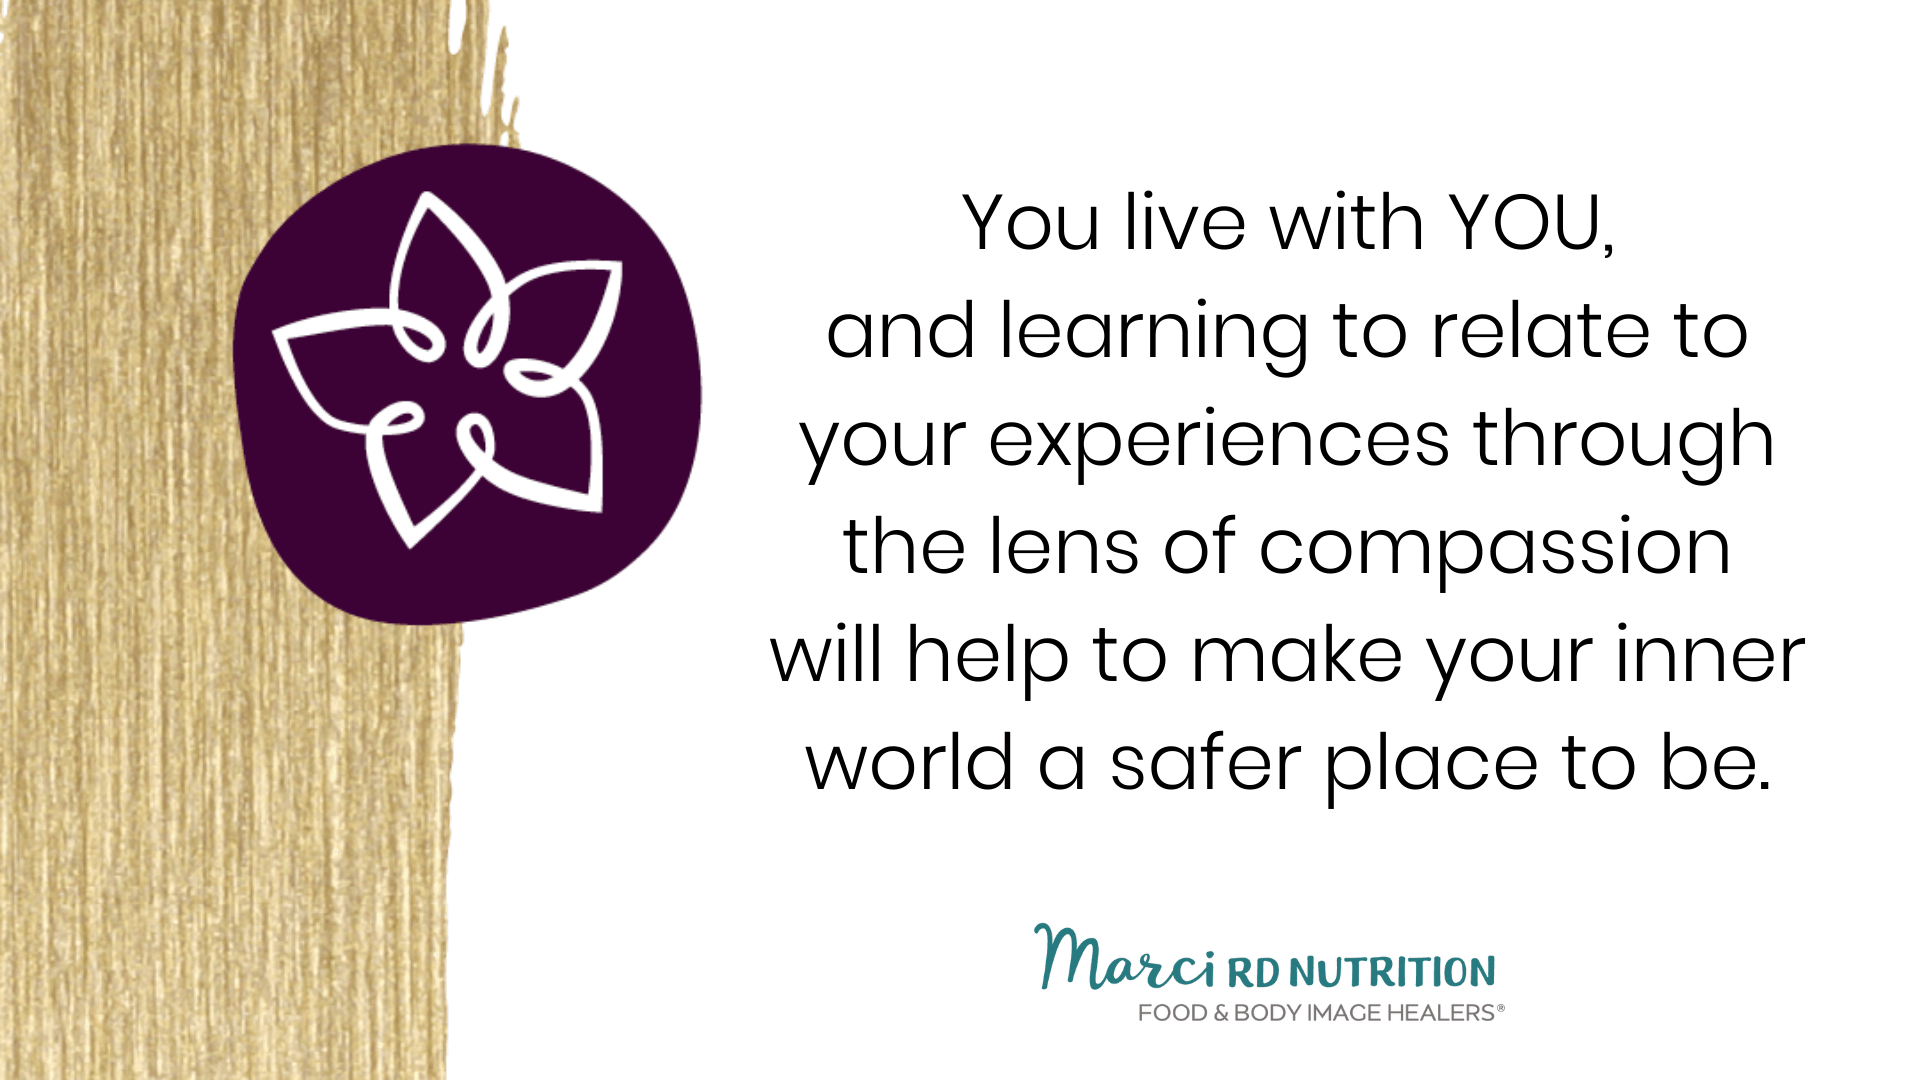 be yourself and learn through your experiences with compassion